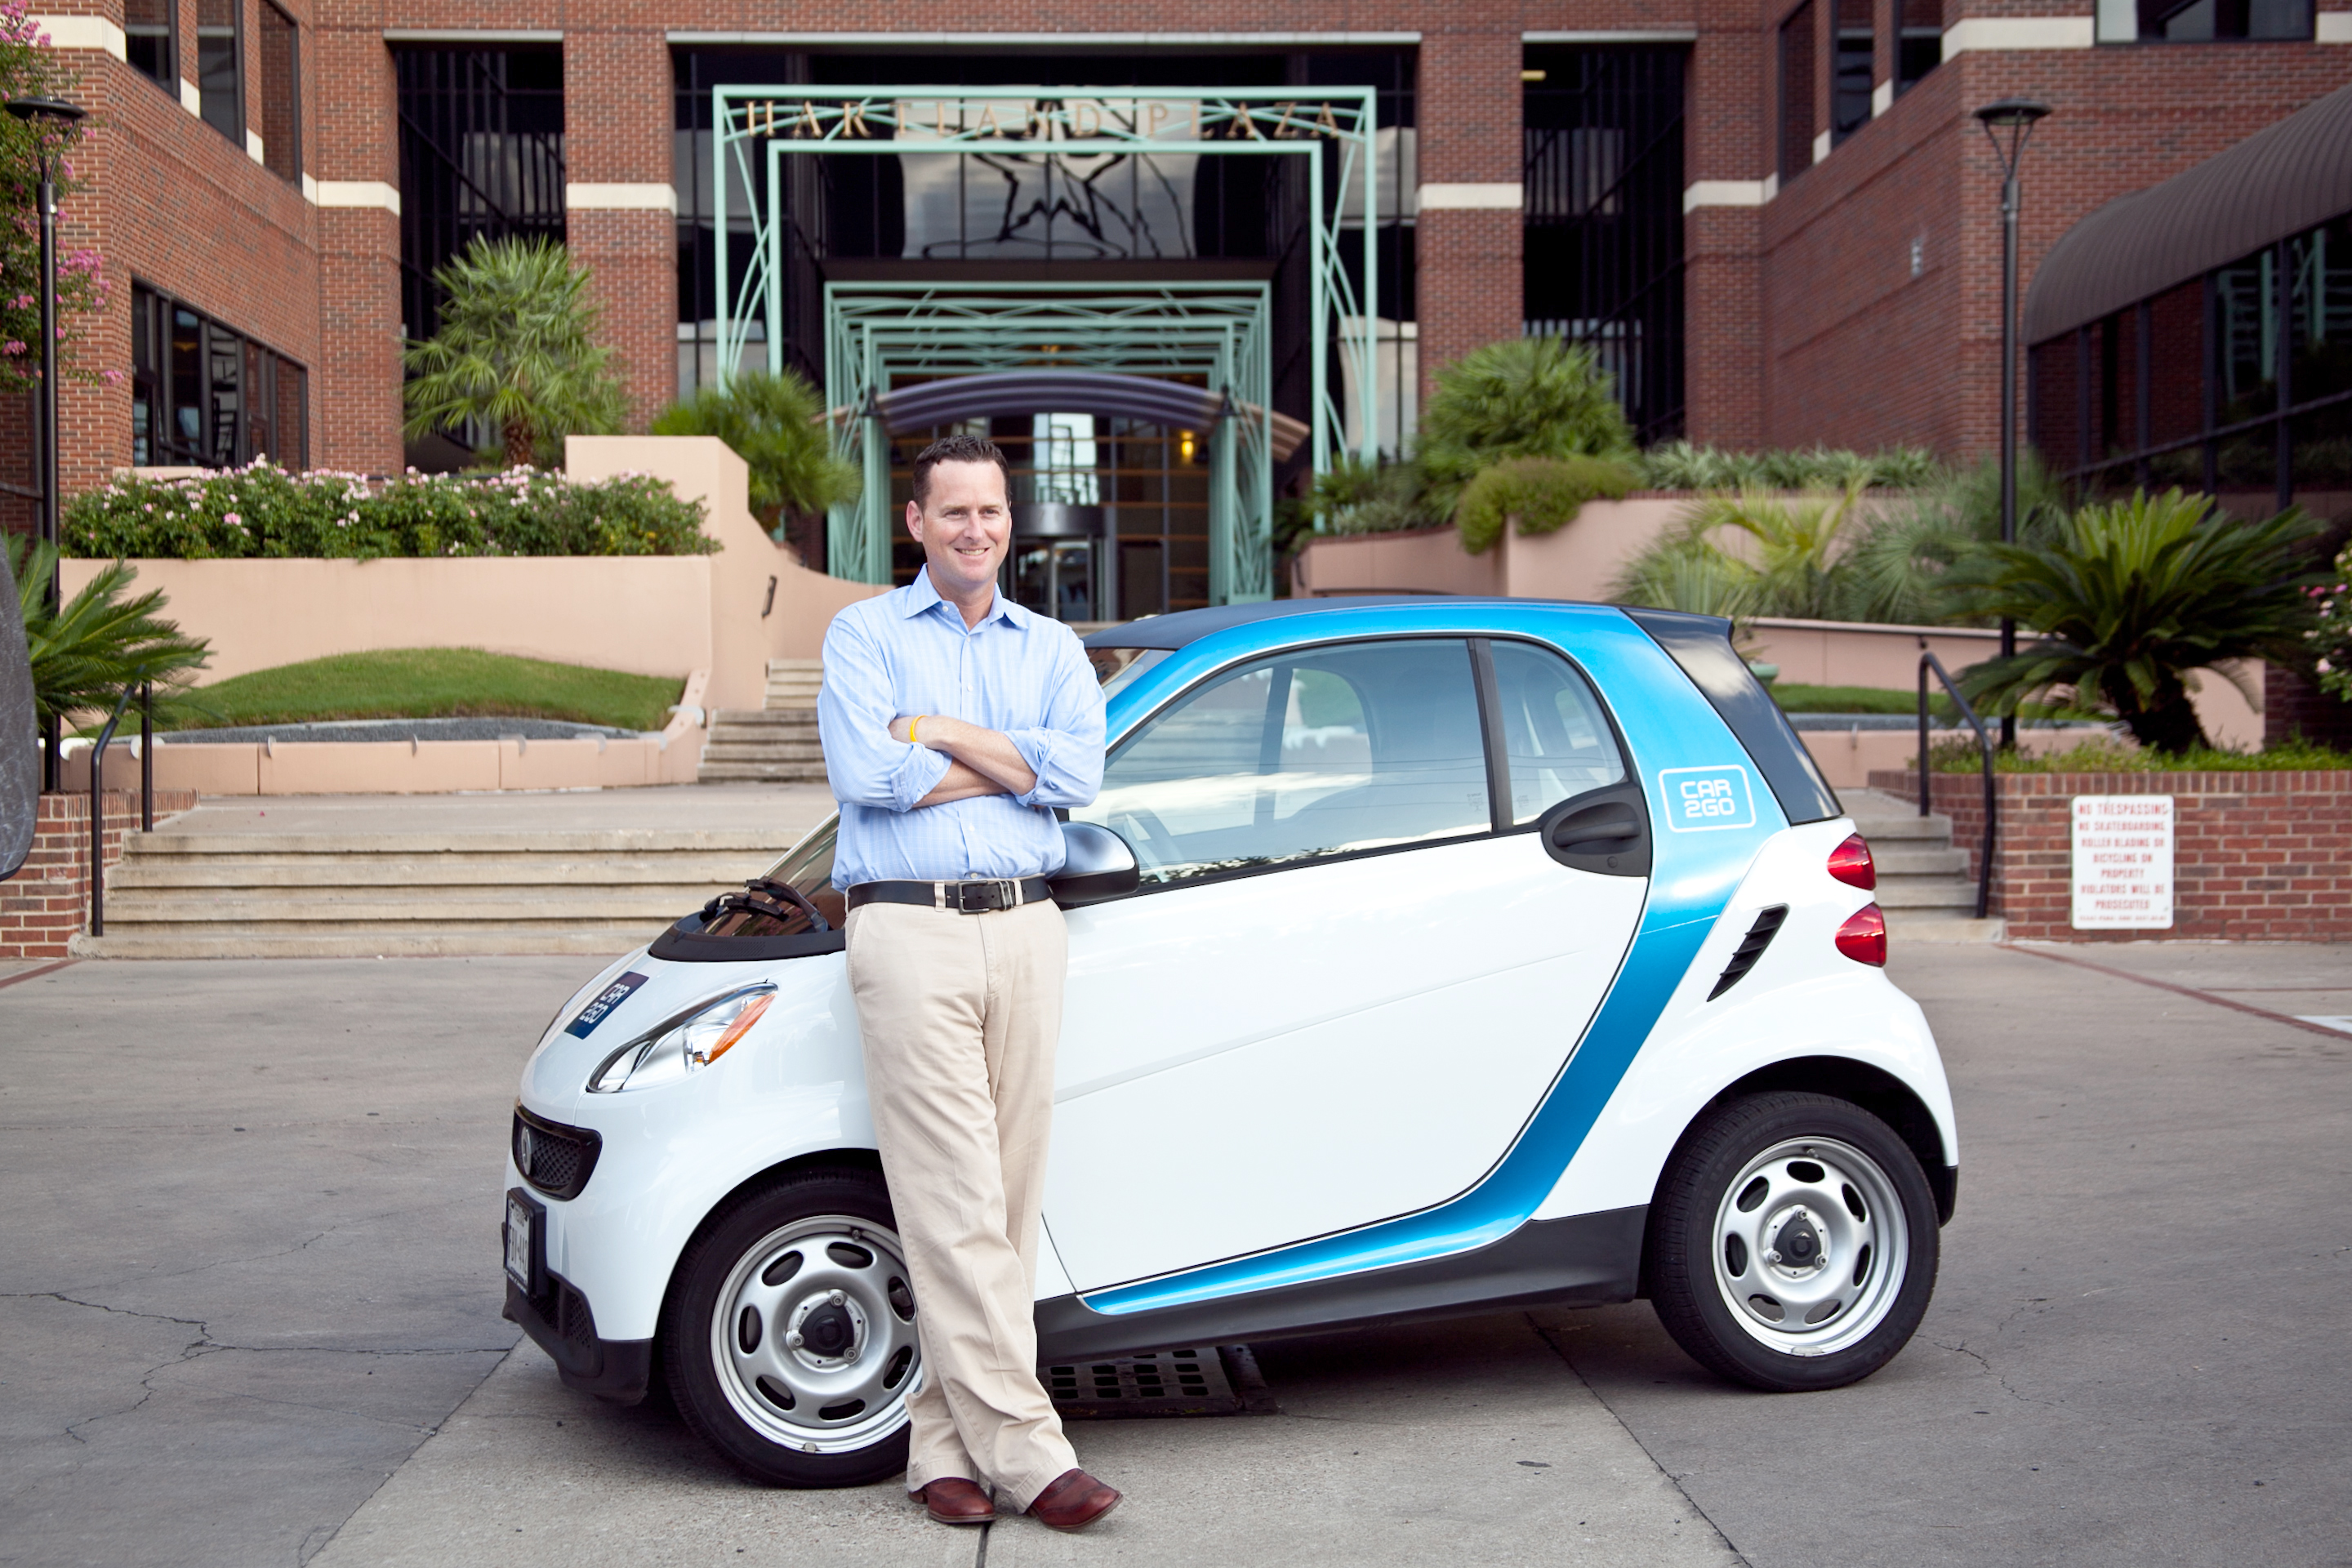 car2go ceo paul delong talks about the role of car sharing in denver streetsblog denver. Black Bedroom Furniture Sets. Home Design Ideas